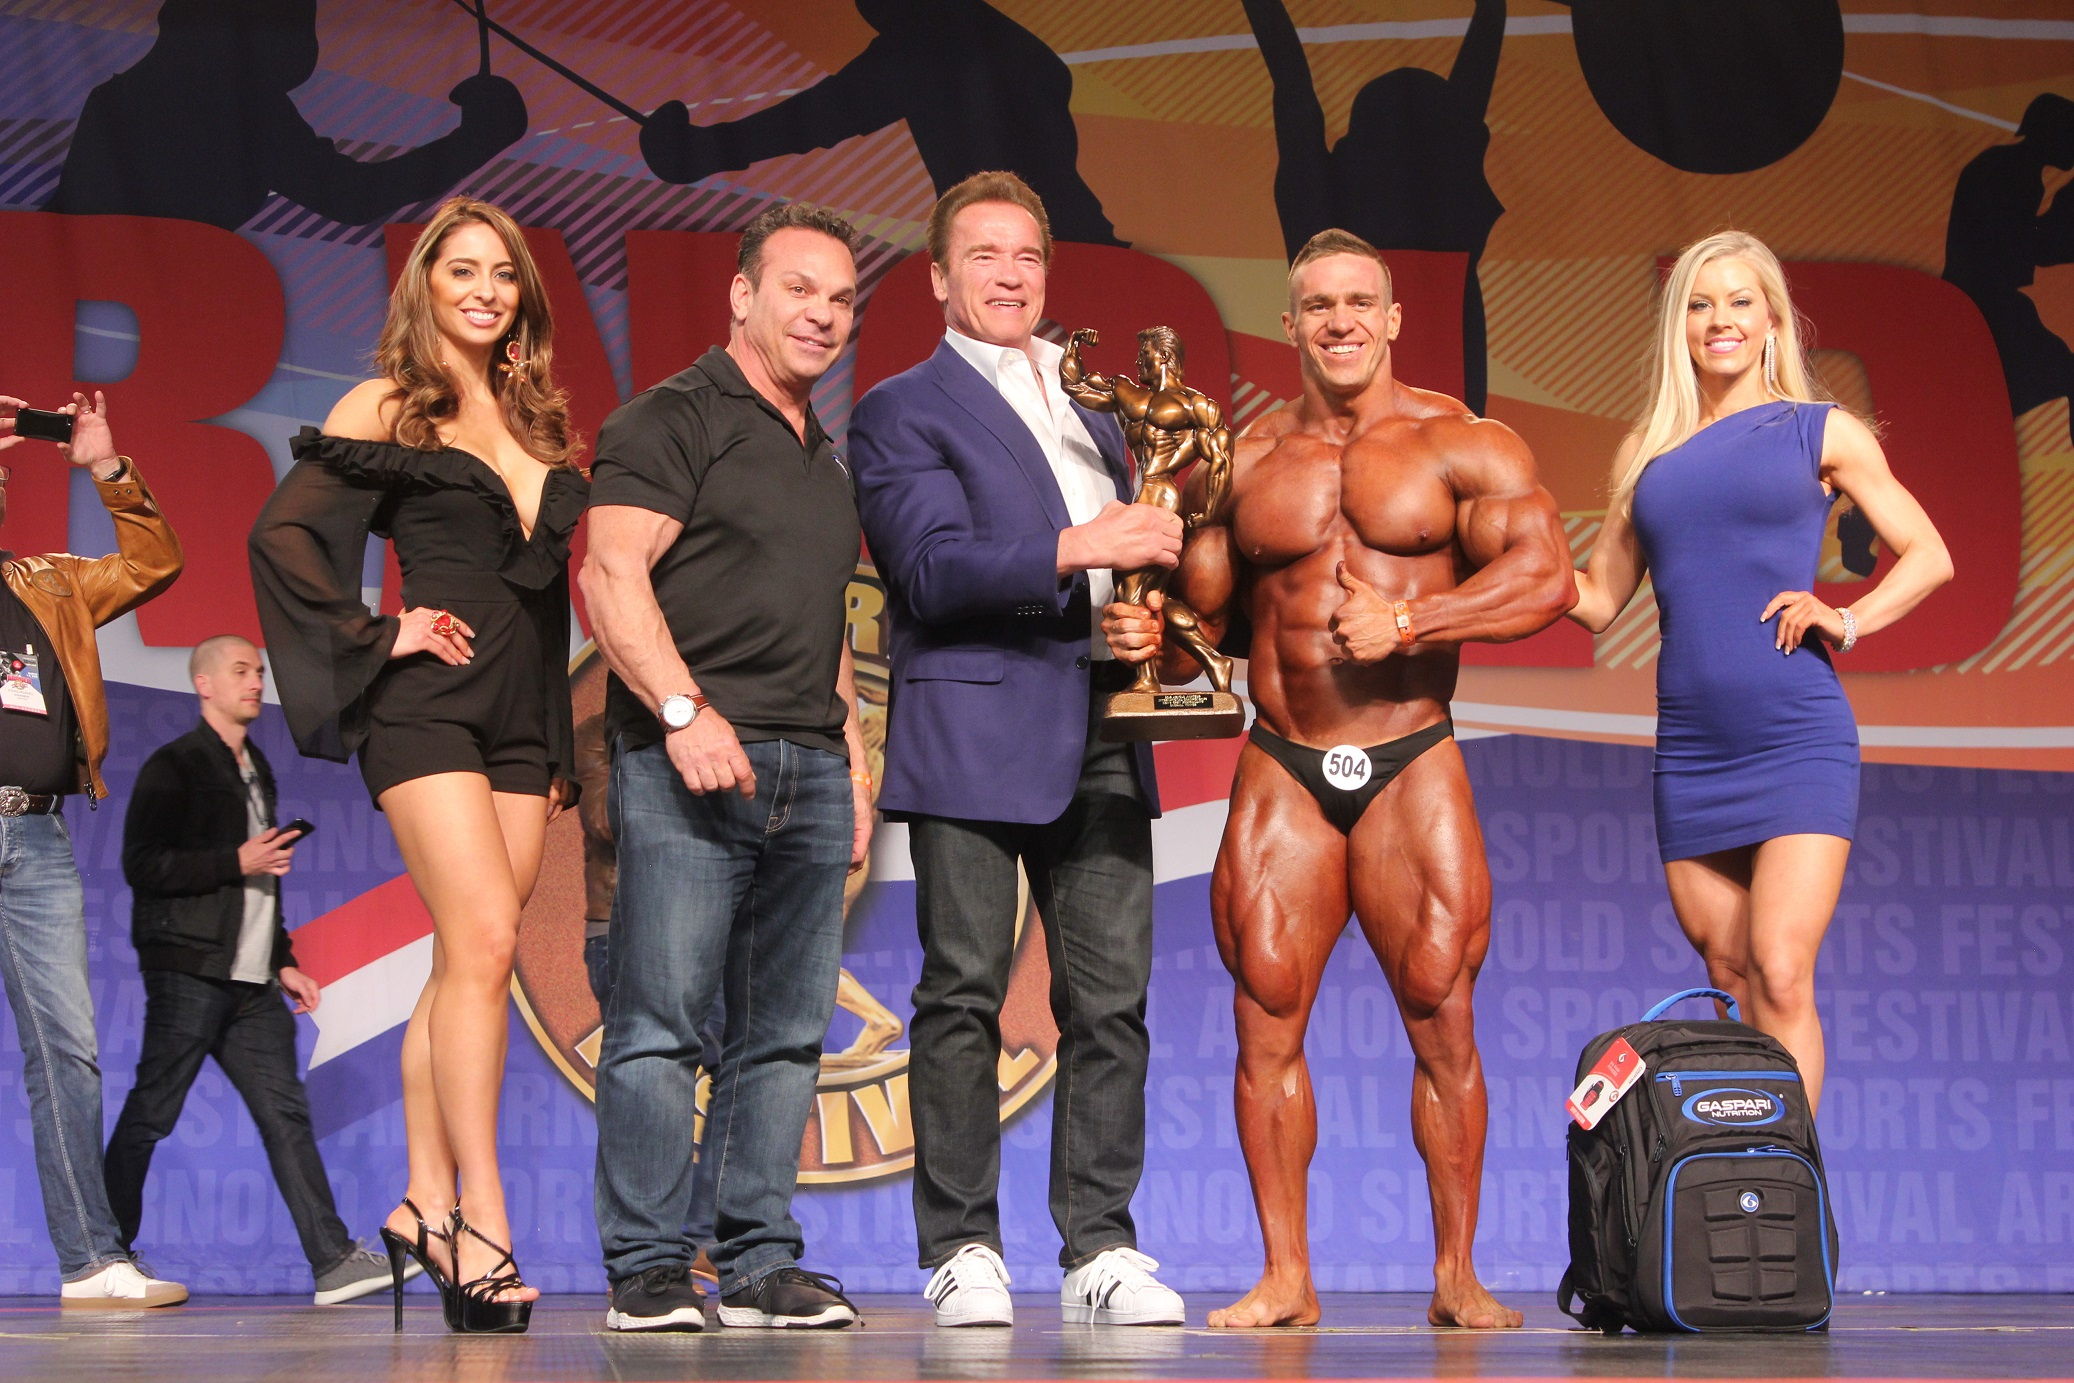 Final, 2008 arnold amateur results you wish